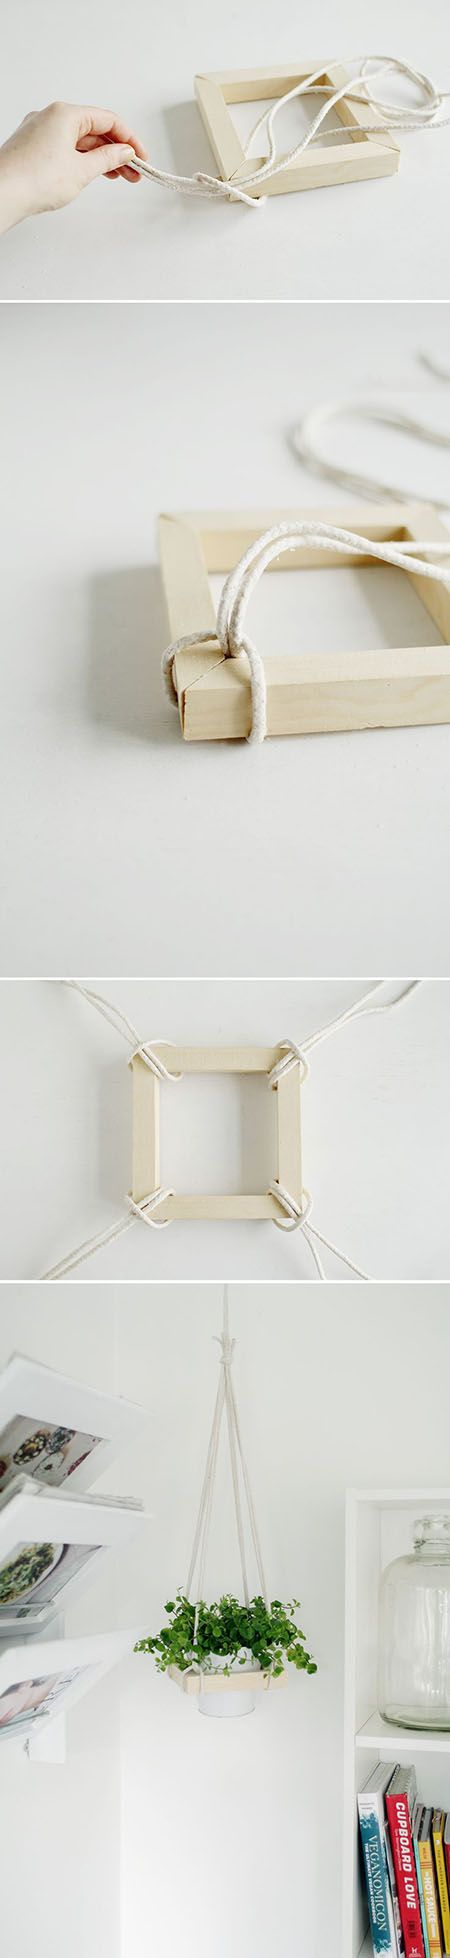 Do it yourself frame for hanging planters great idea for a home do it yourself frame for hanging planters great idea for a home office solutioingenieria Images